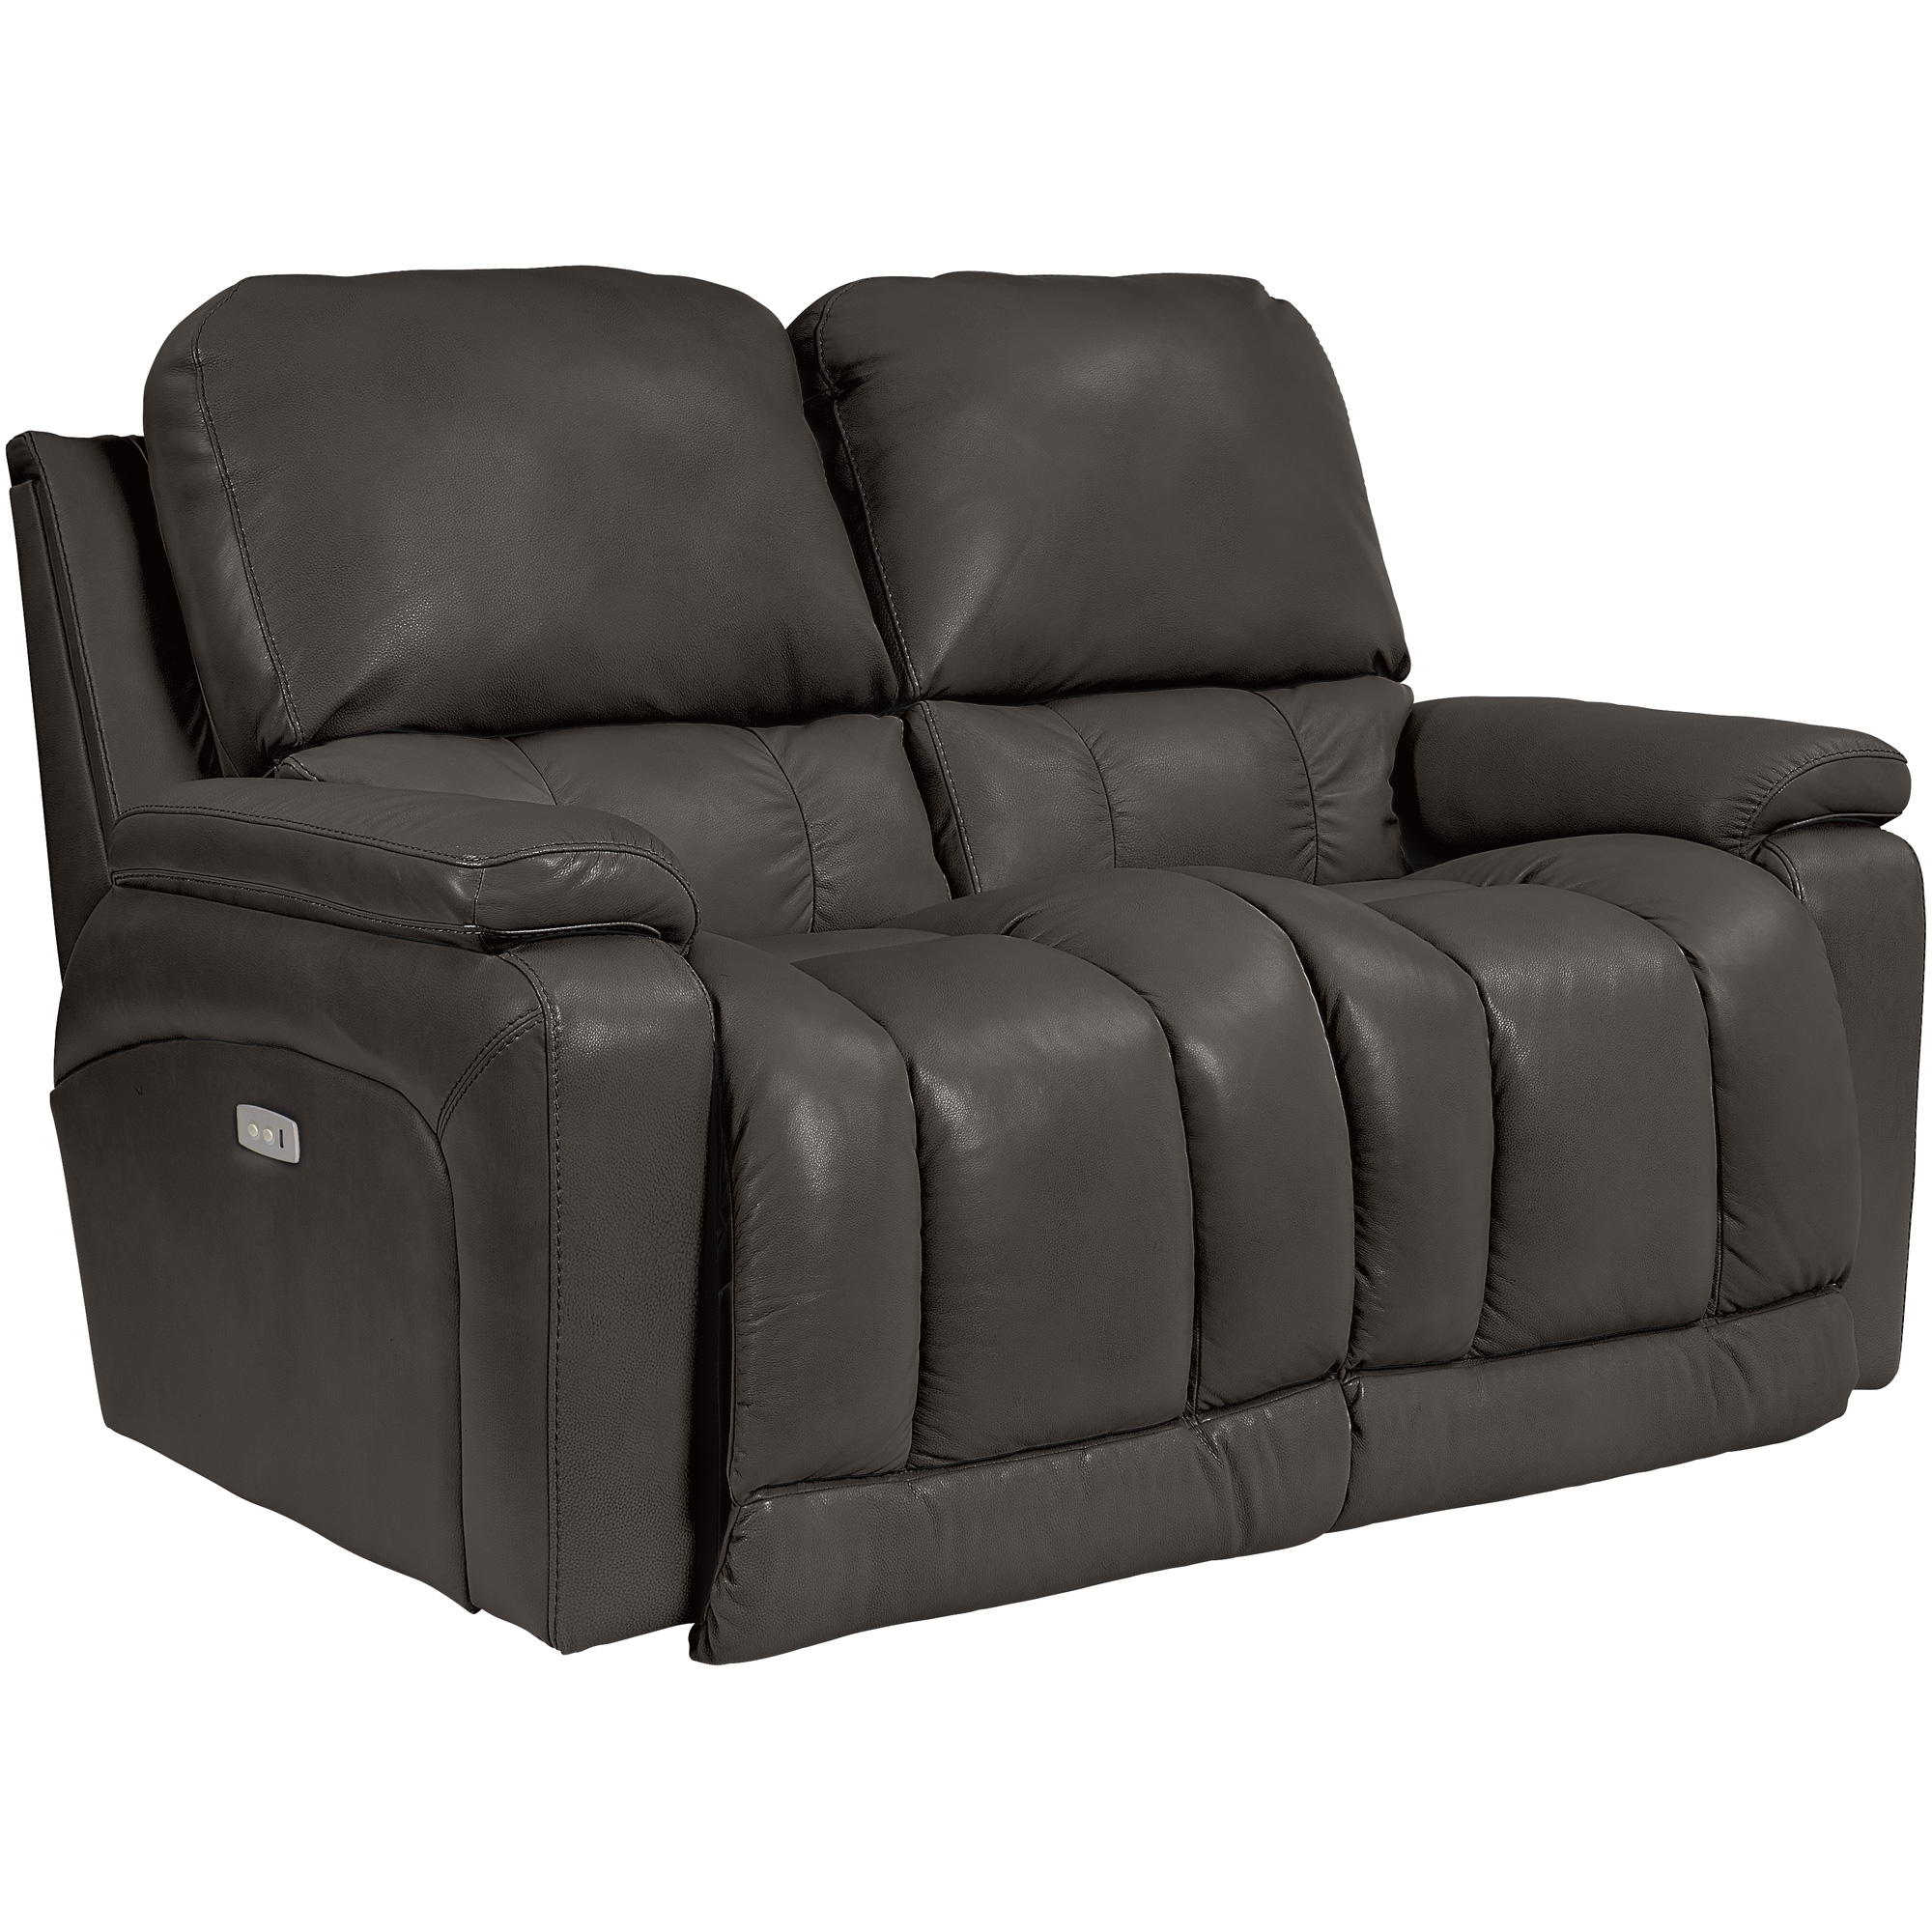 La-Z-Boy | Greyson Shitake Power Reclining Loveseat Sofa